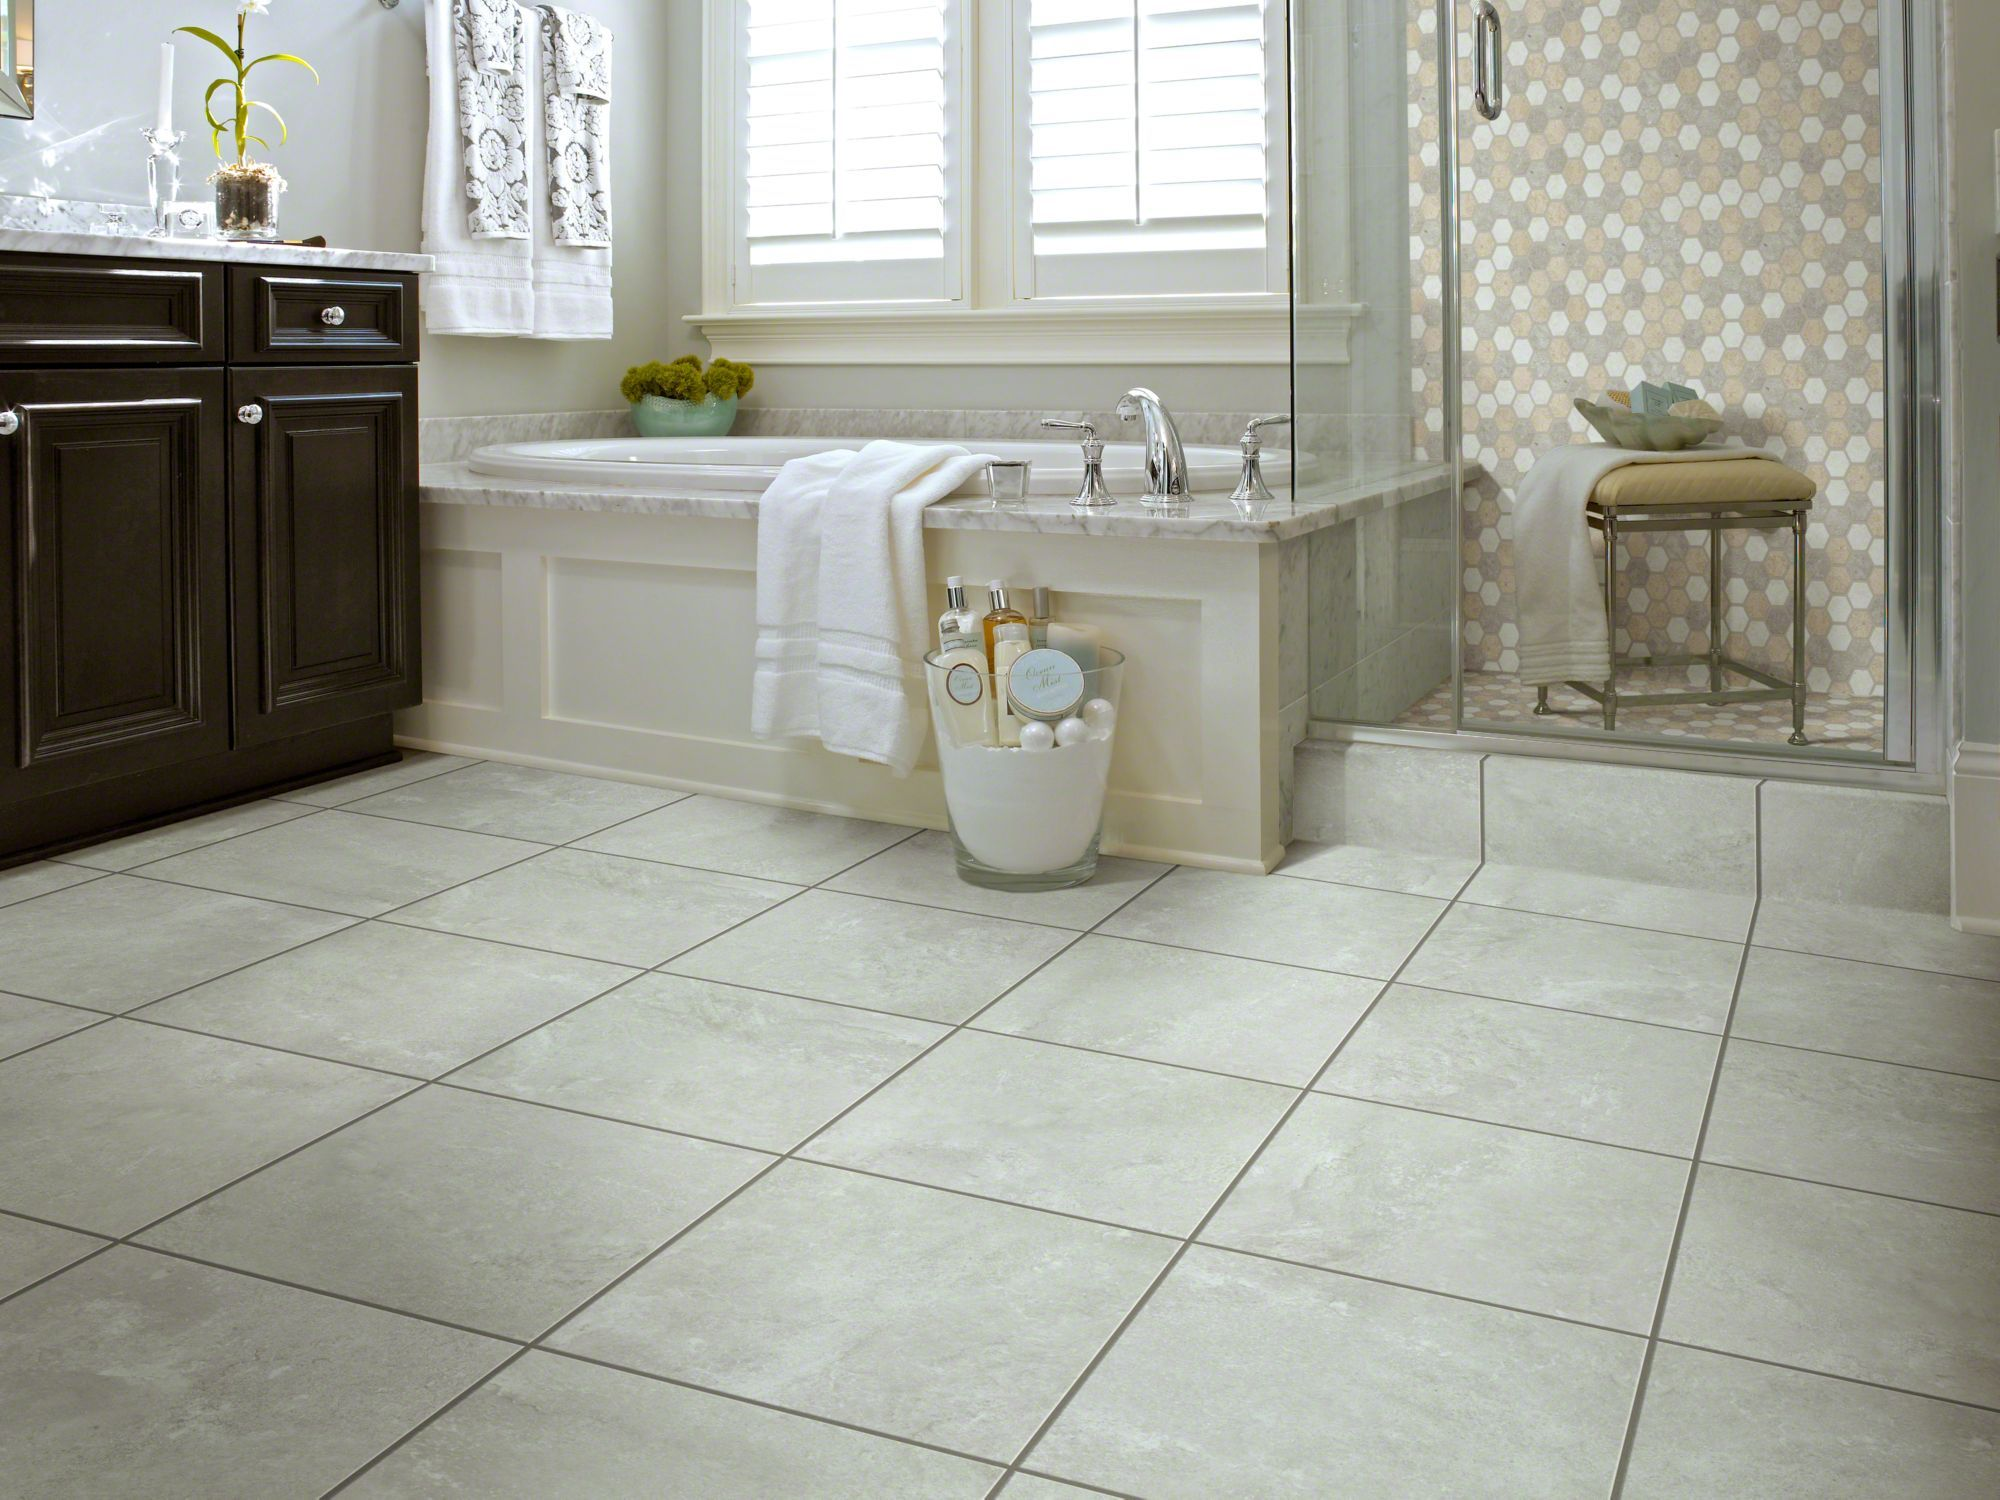 Resort Tile A Gorgeous Luxury Vinyl Tile Grouted With A Non Stainable Grout Looks Like Ce With Images Bathroom Flooring Trends Flooring Trends Vinyl Flooring Bathroom